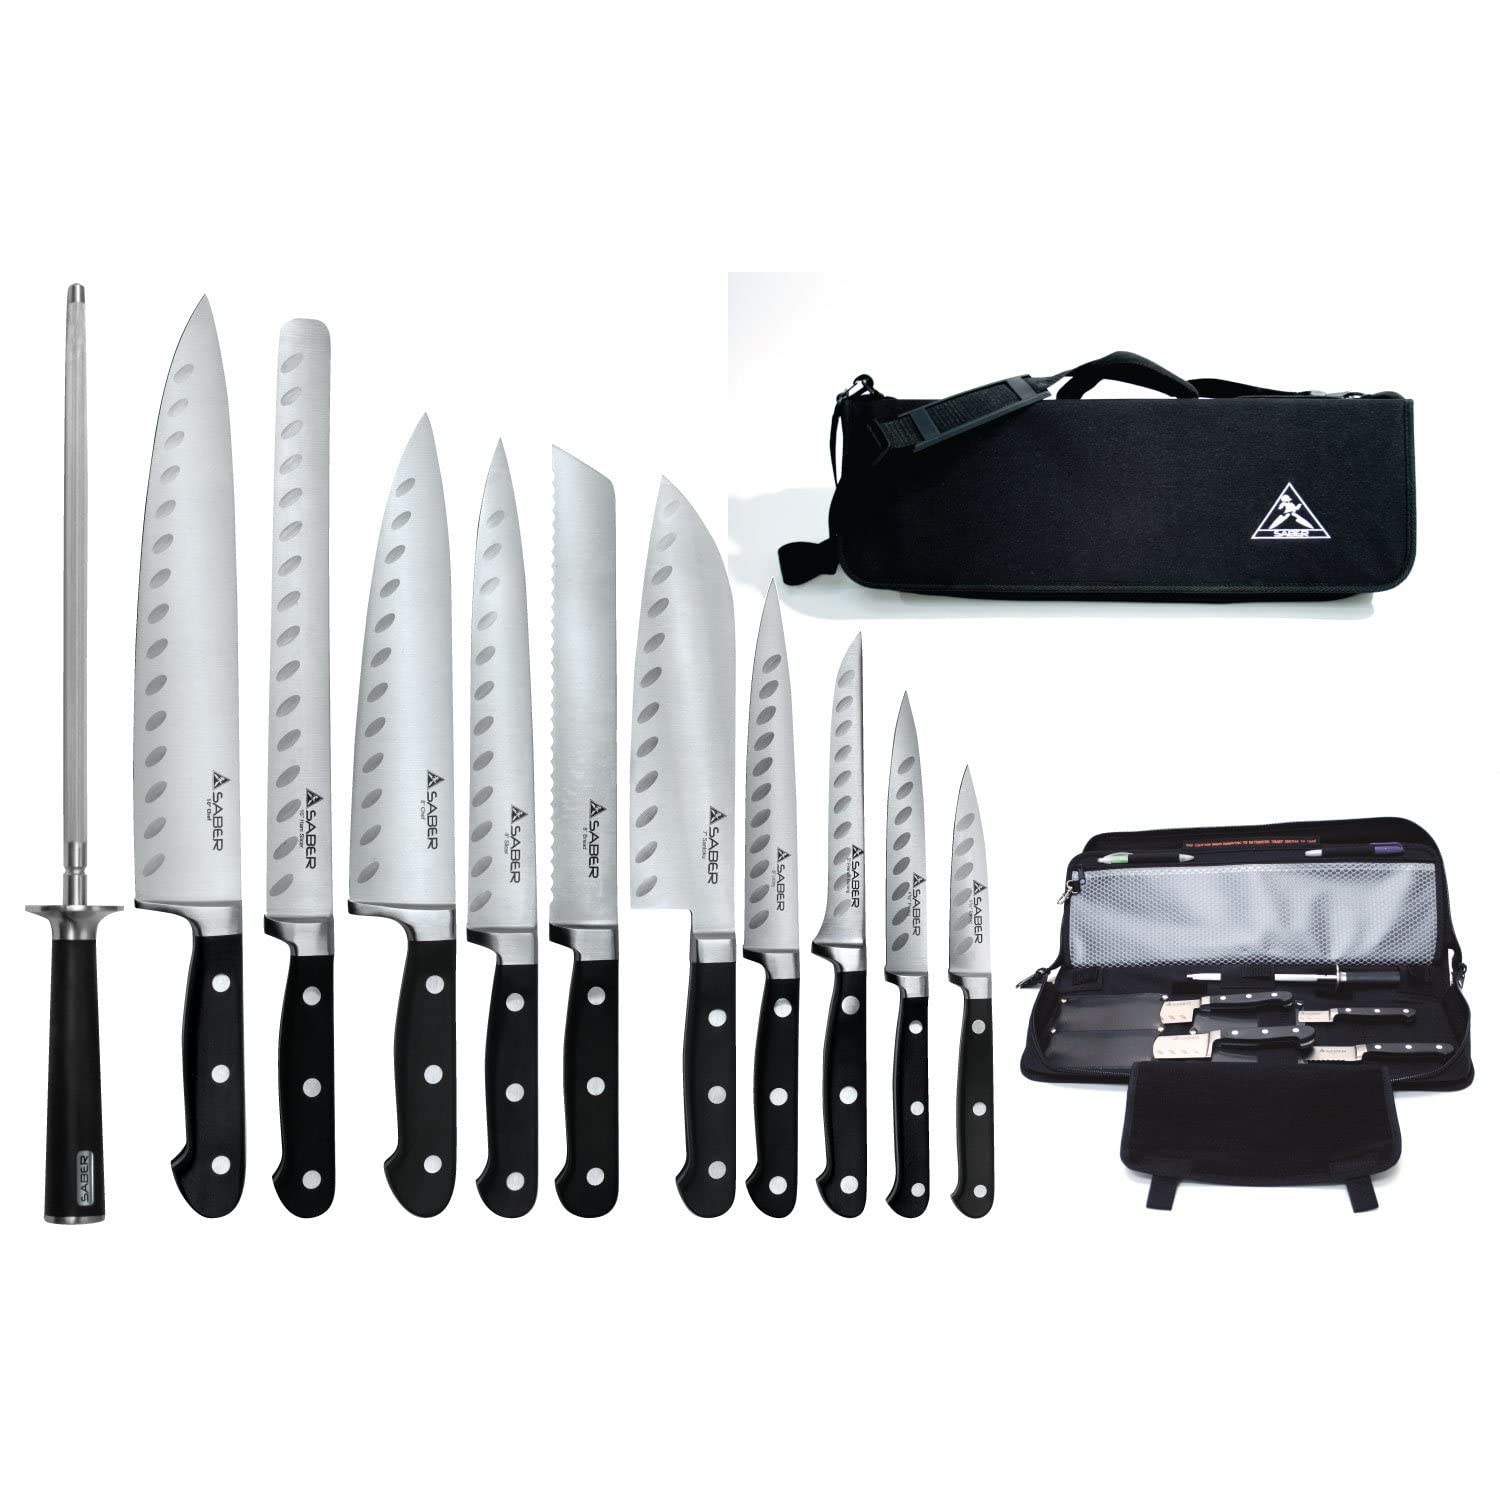 professional chef knife sets. Black Bedroom Furniture Sets. Home Design Ideas